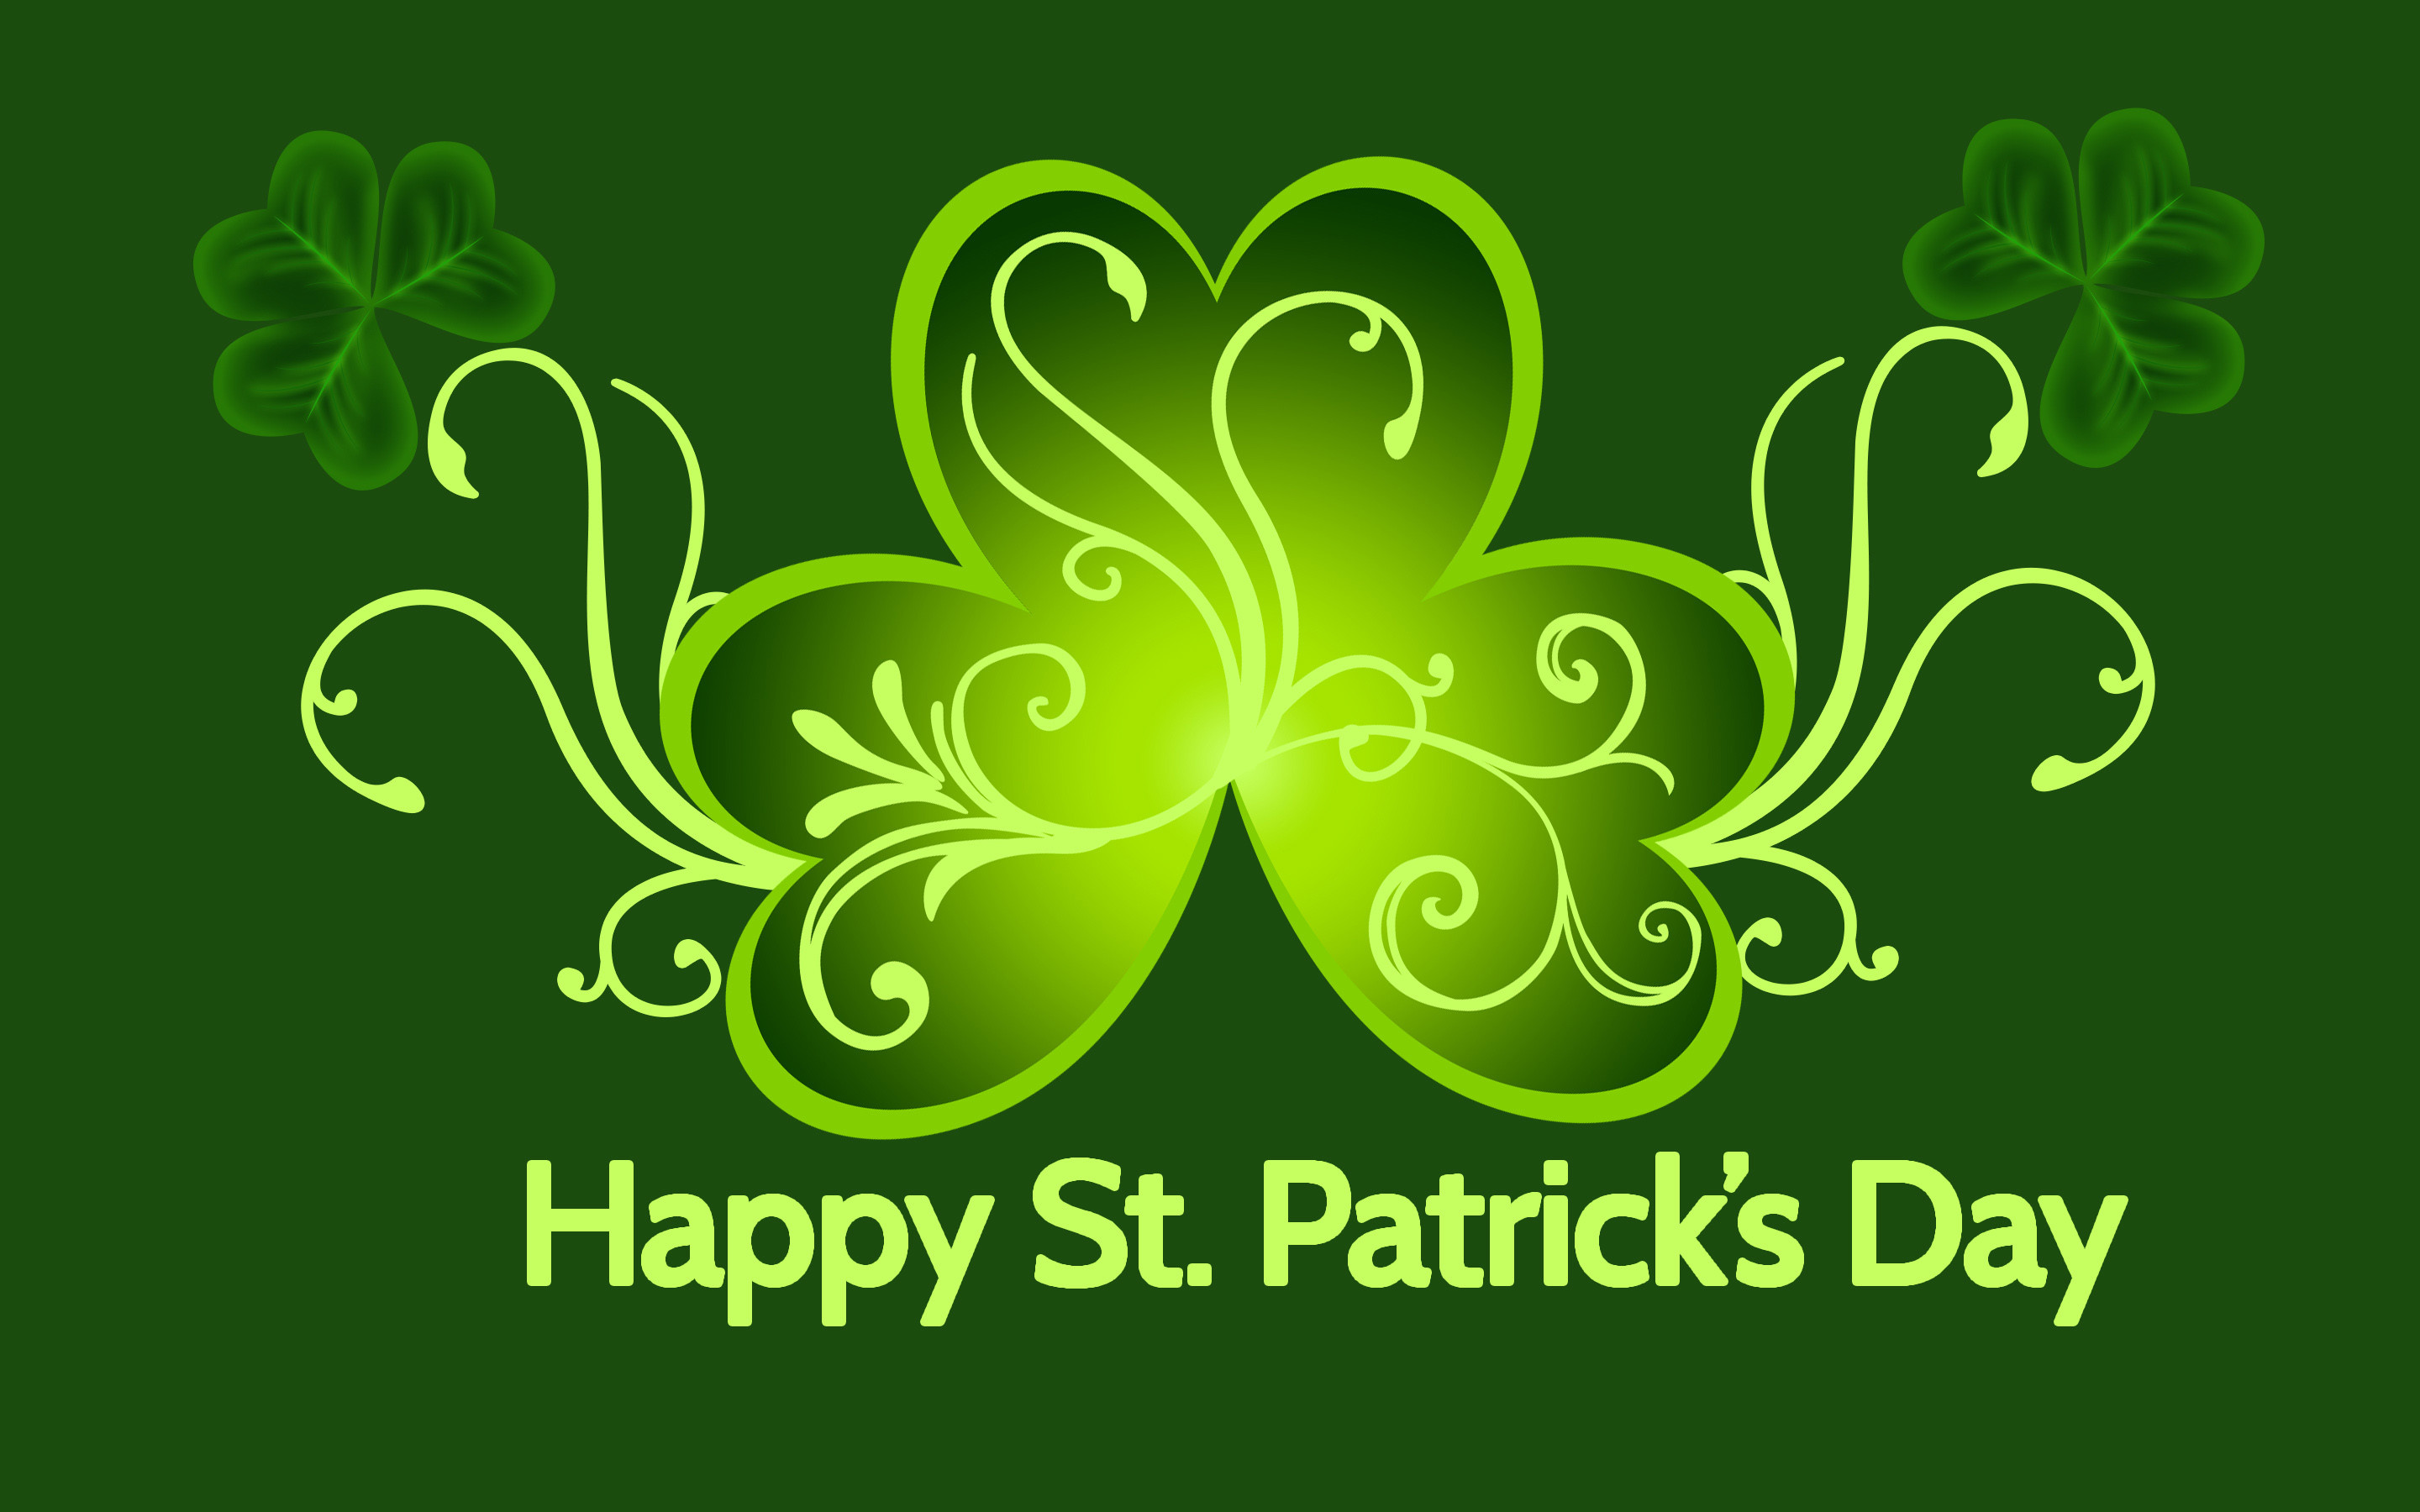 St Patricks Day Wallpaper Images 69 images 2880x1800